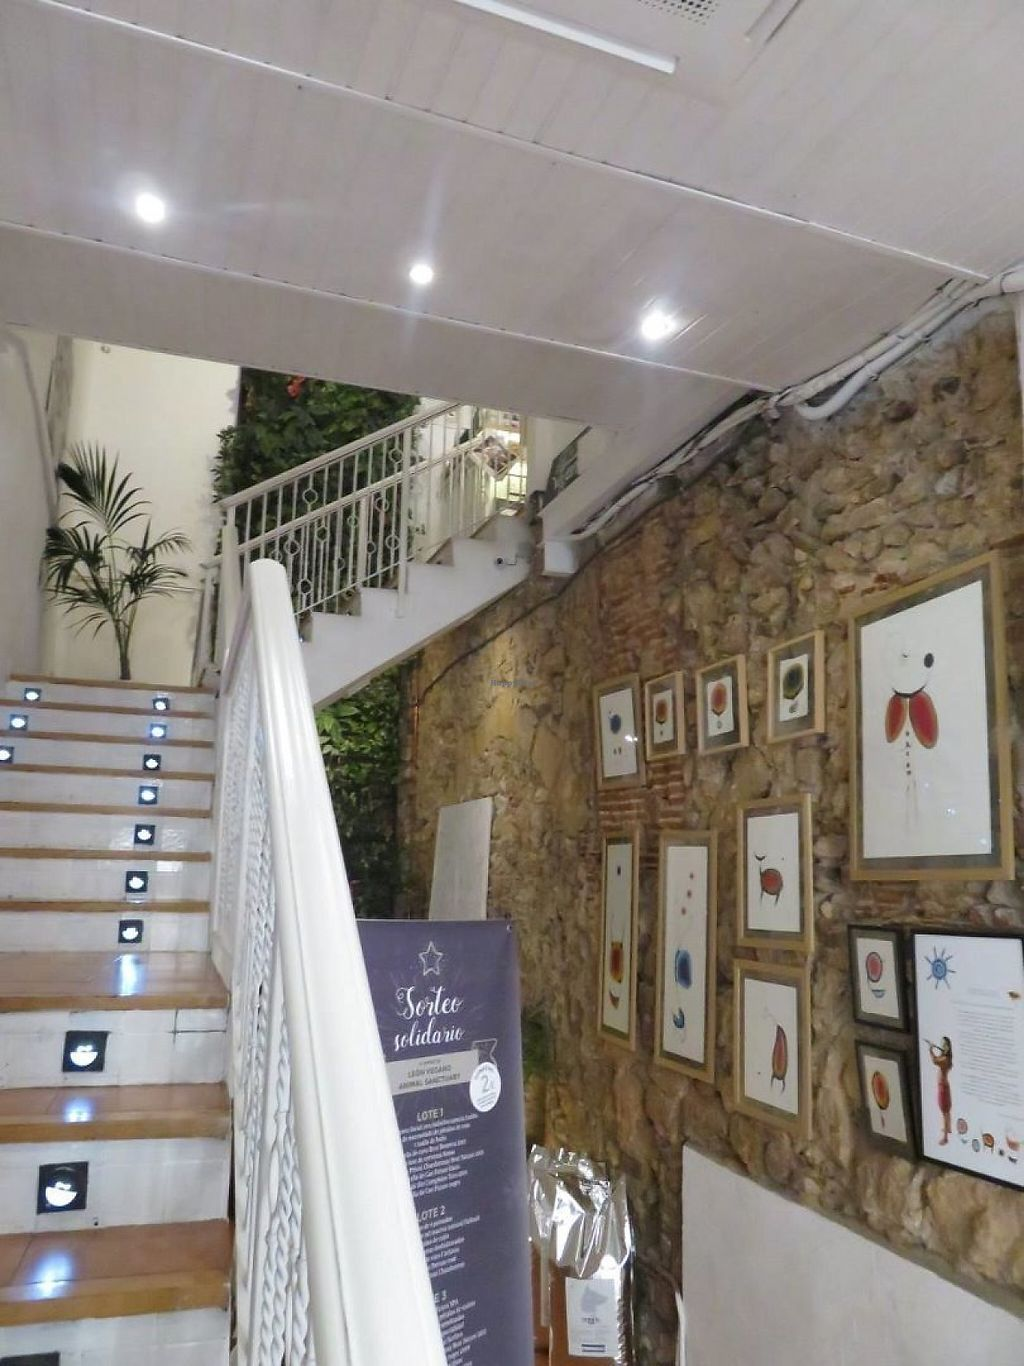 """Photo of El Vergel Veggie Restaurant  by <a href=""""/members/profile/Pinelele"""">Pinelele</a> <br/>stairway up to the restaurant <br/> May 22, 2017  - <a href='/contact/abuse/image/53682/261545'>Report</a>"""